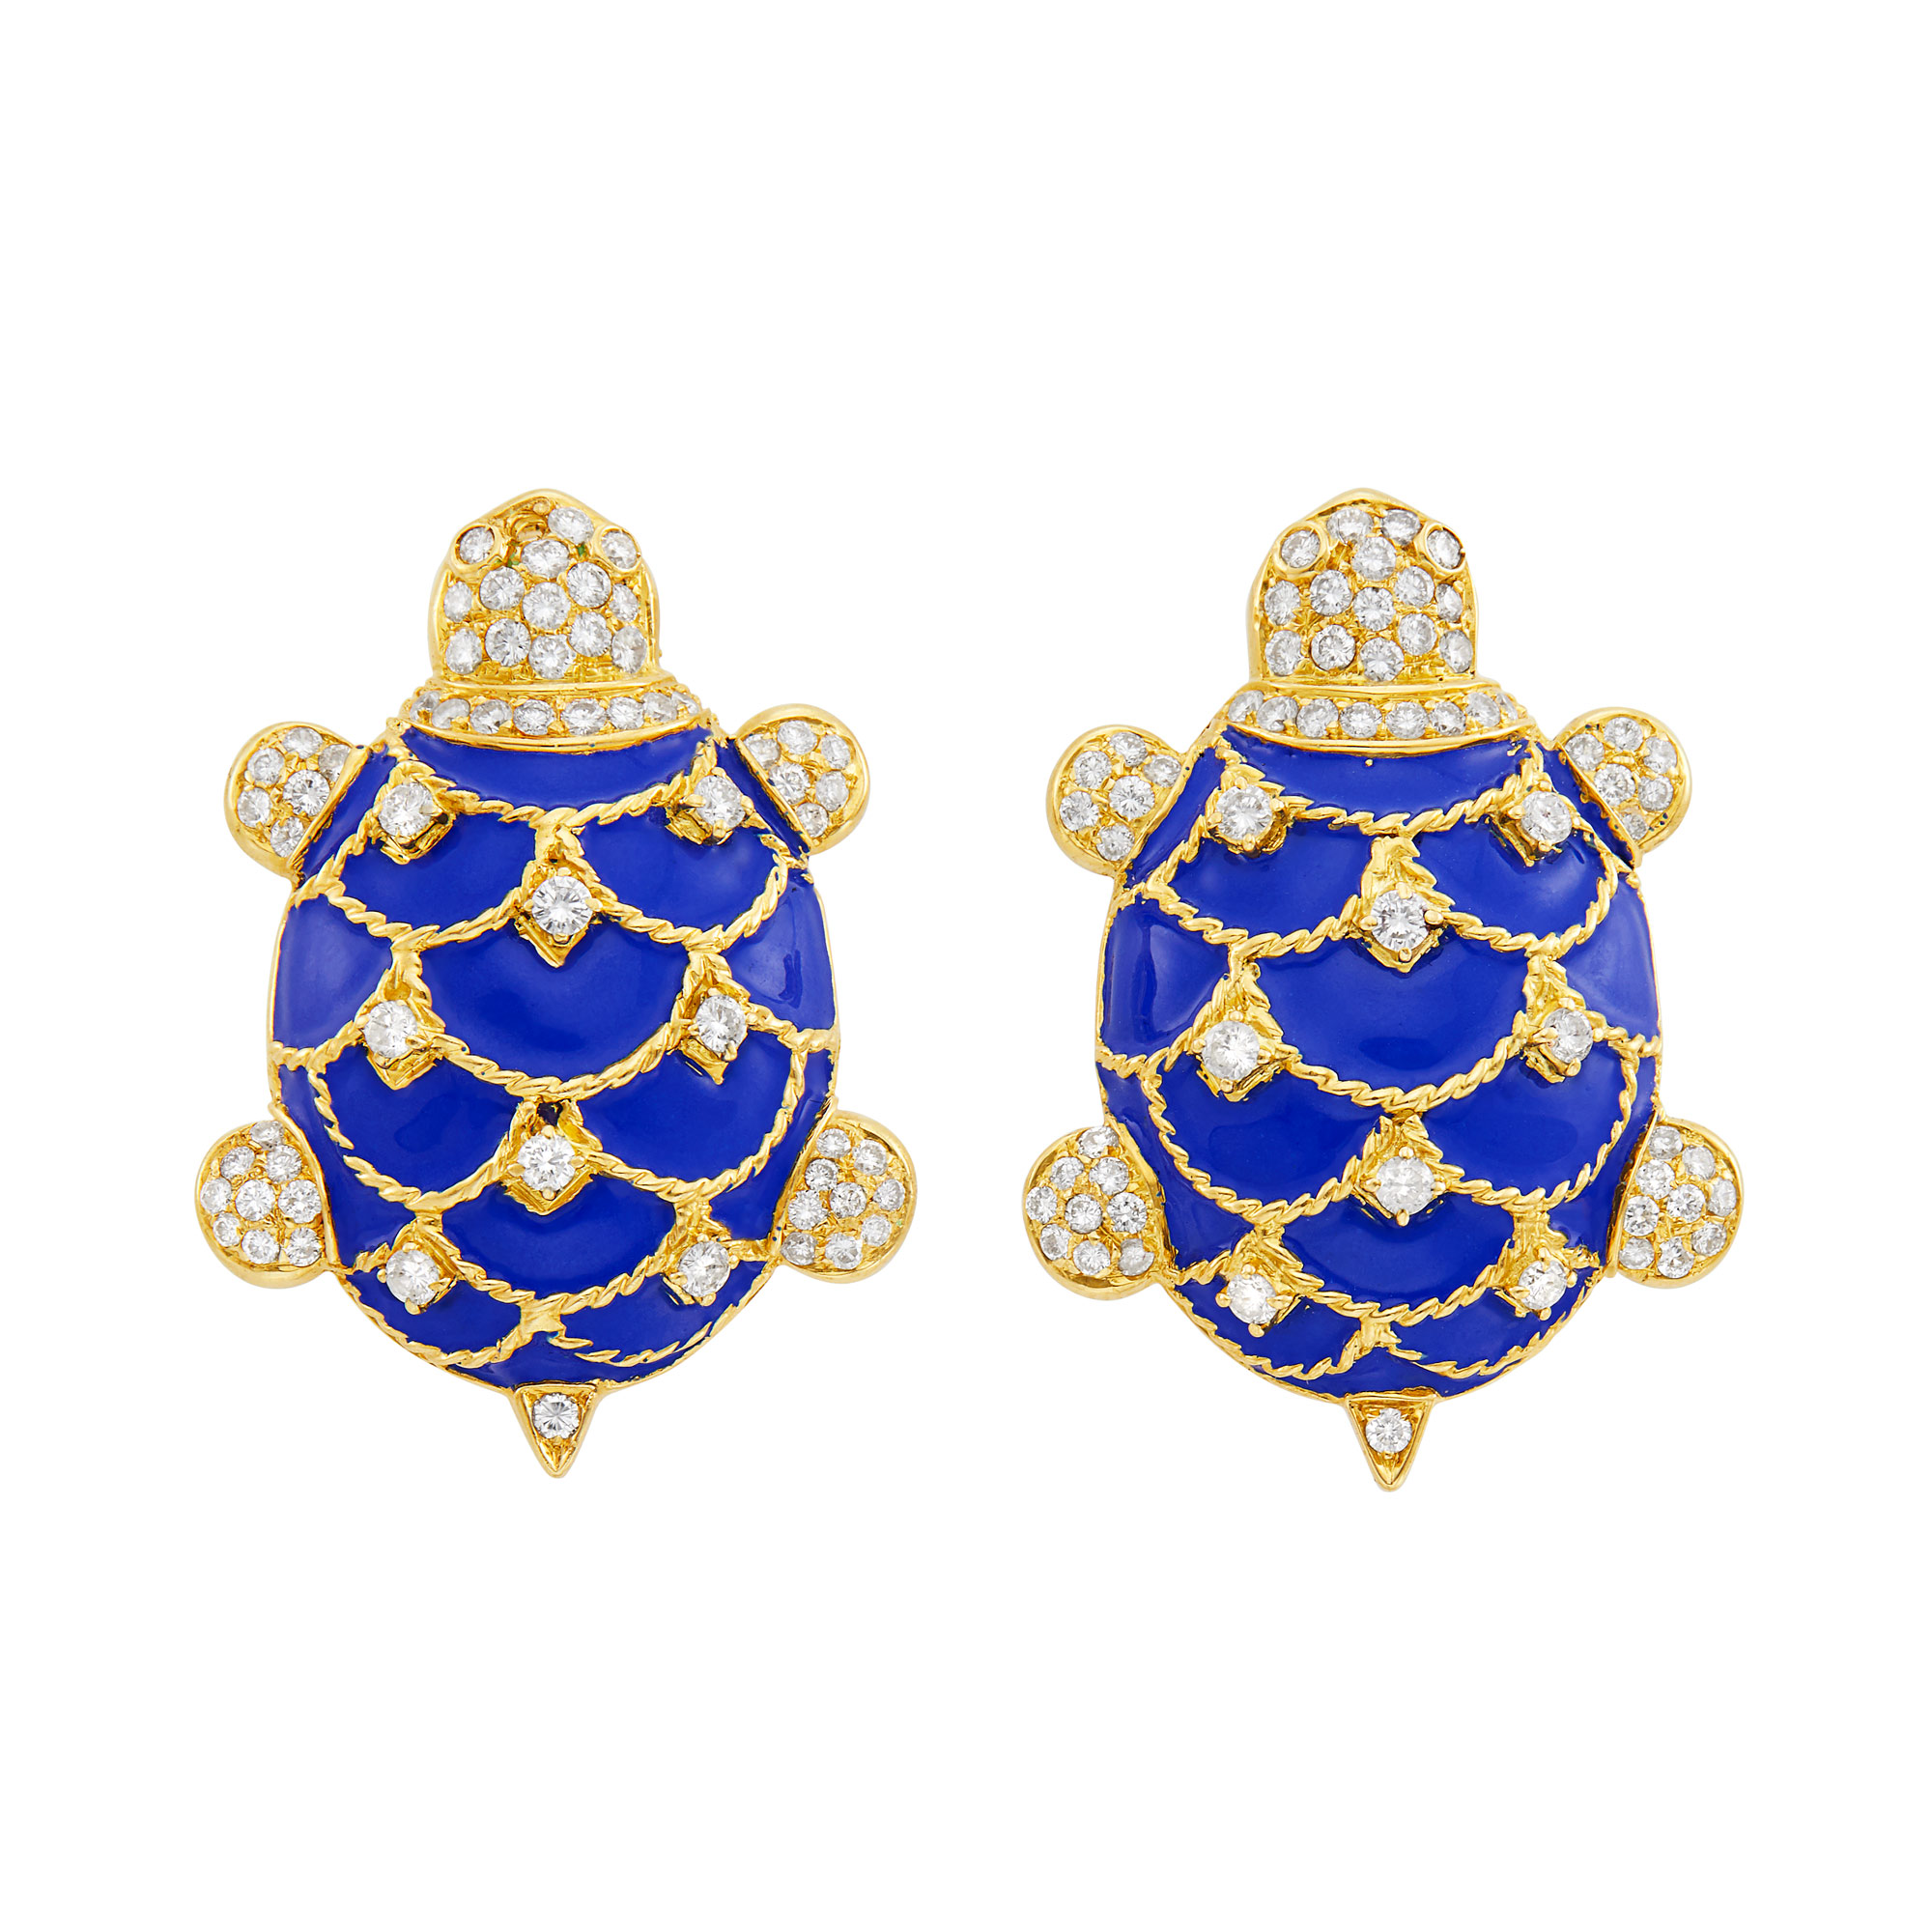 Lot image - Pair of Gold, Blue Enamel and Diamond Turtle Cufflinks